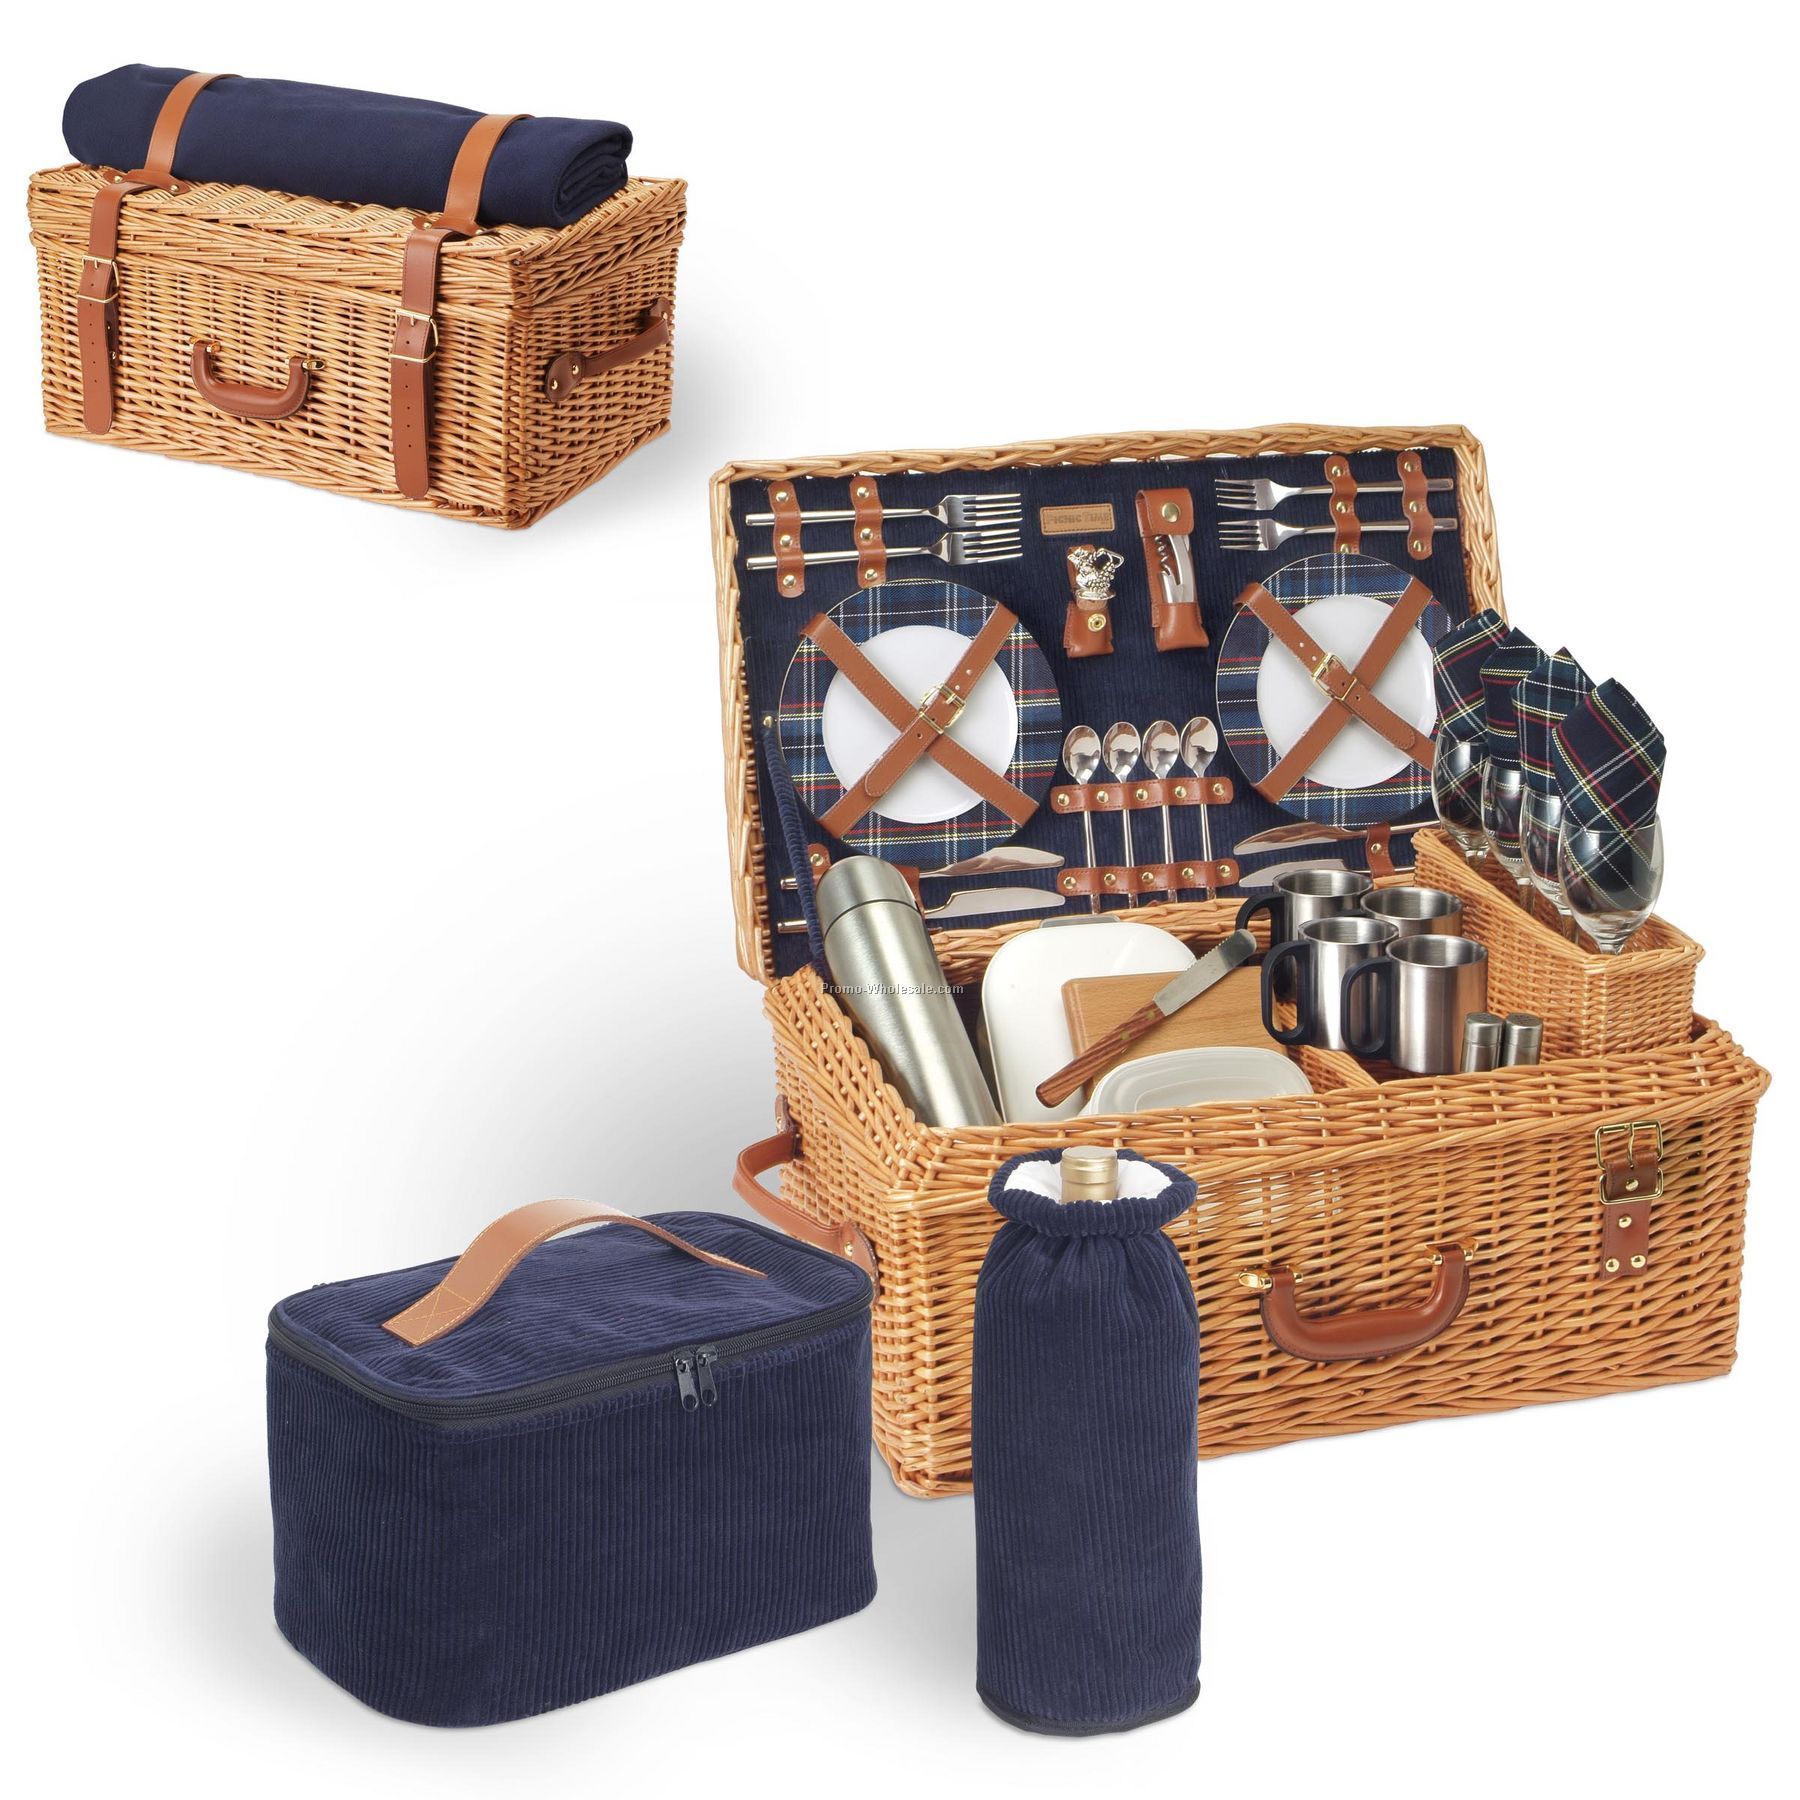 Cheap Picnic Basket For 4 : Windsor english style suitcase picnic basket with service